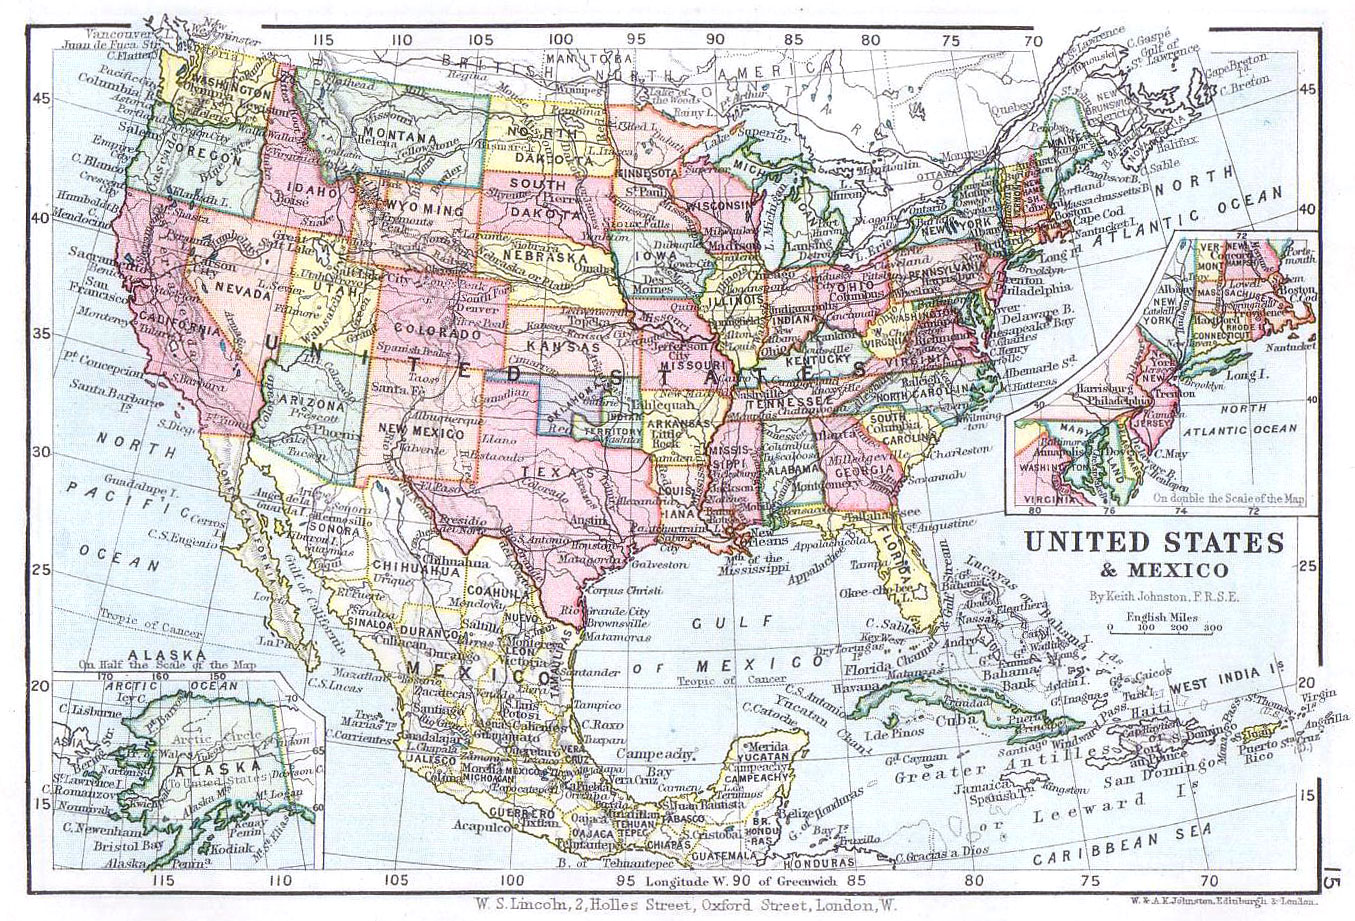 U.S.A & Mexico Map (Lincoln Stamp Album 1899) - Philatelic Database